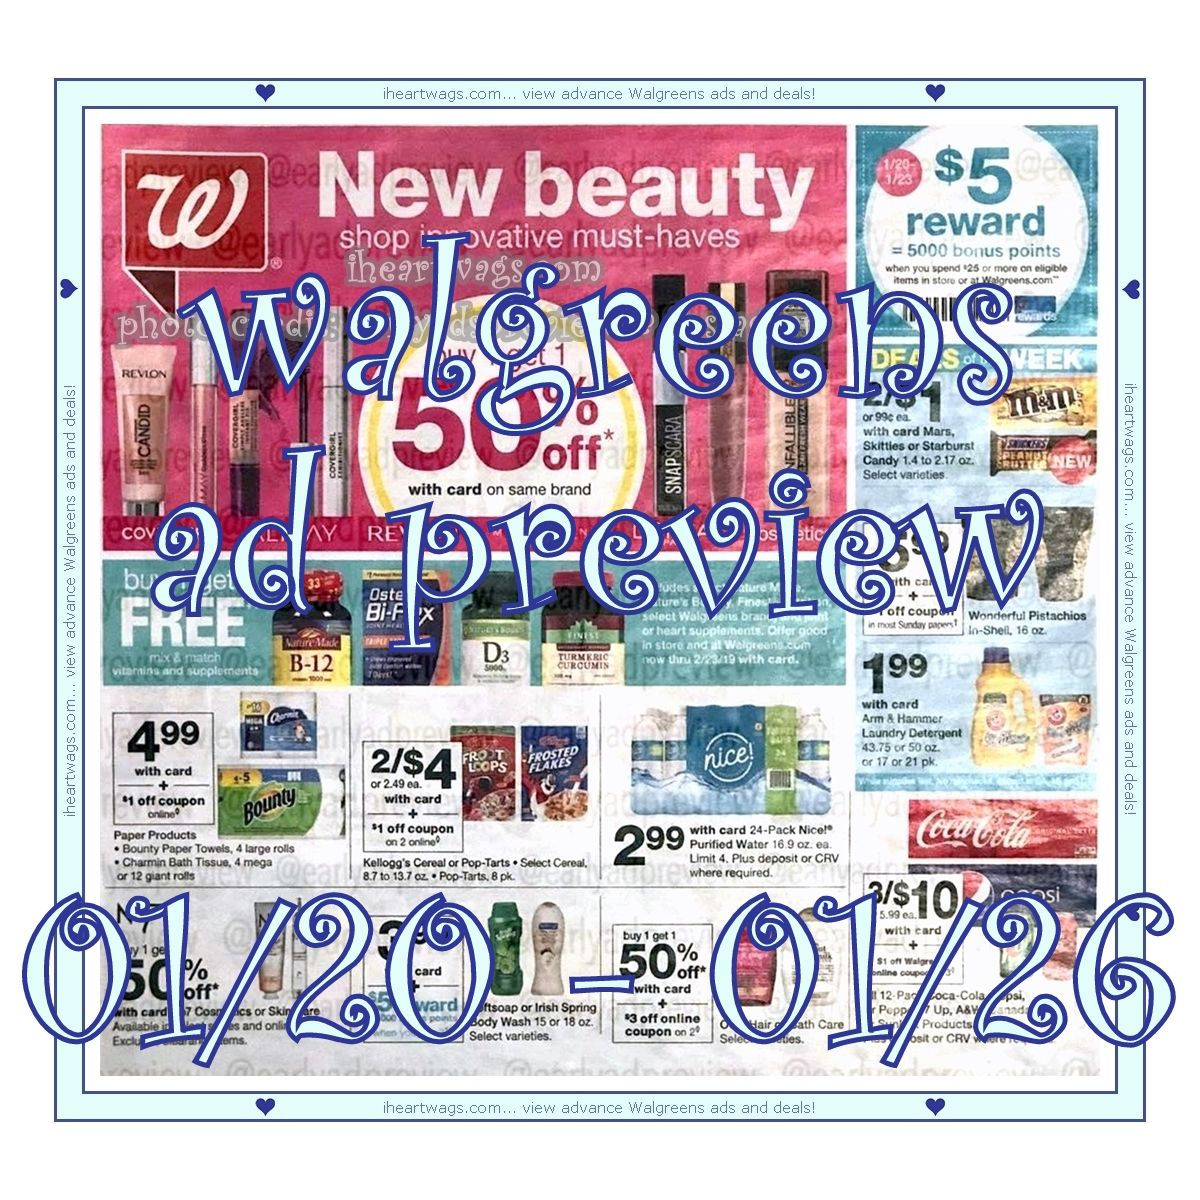 0120 0126 with images beauty must haves walgreens